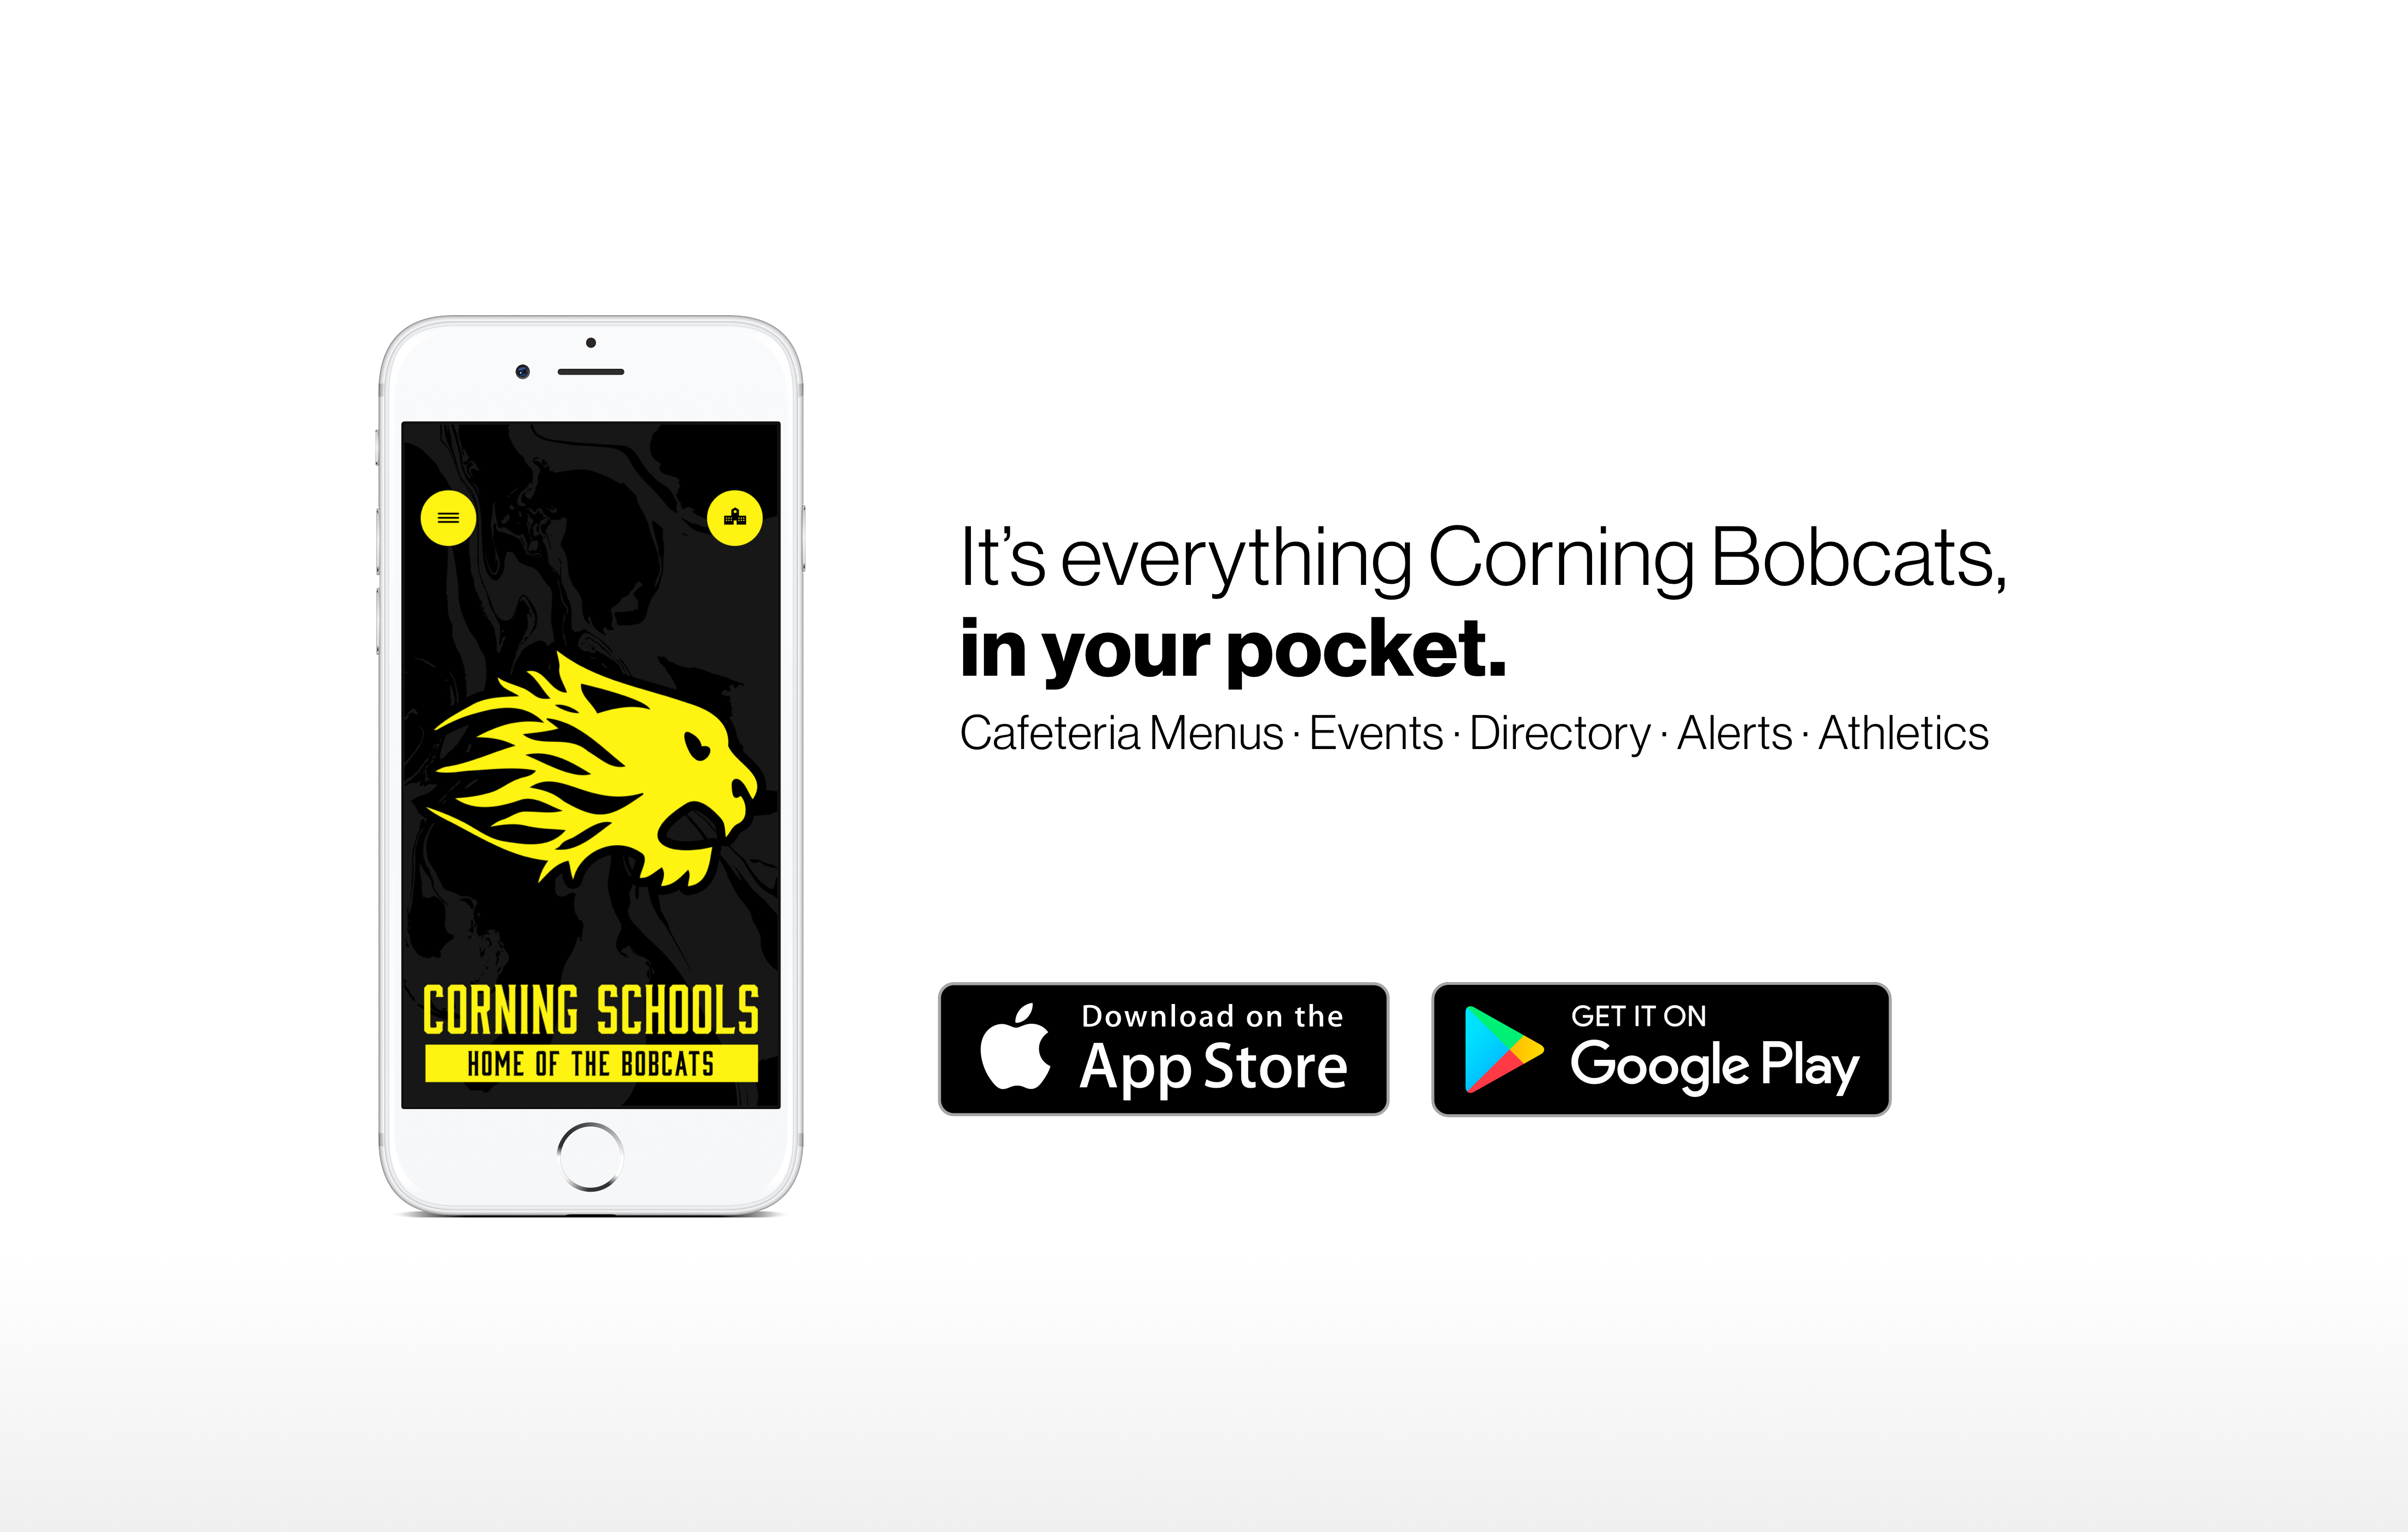 It's everything Corning Bobcats in your pocket